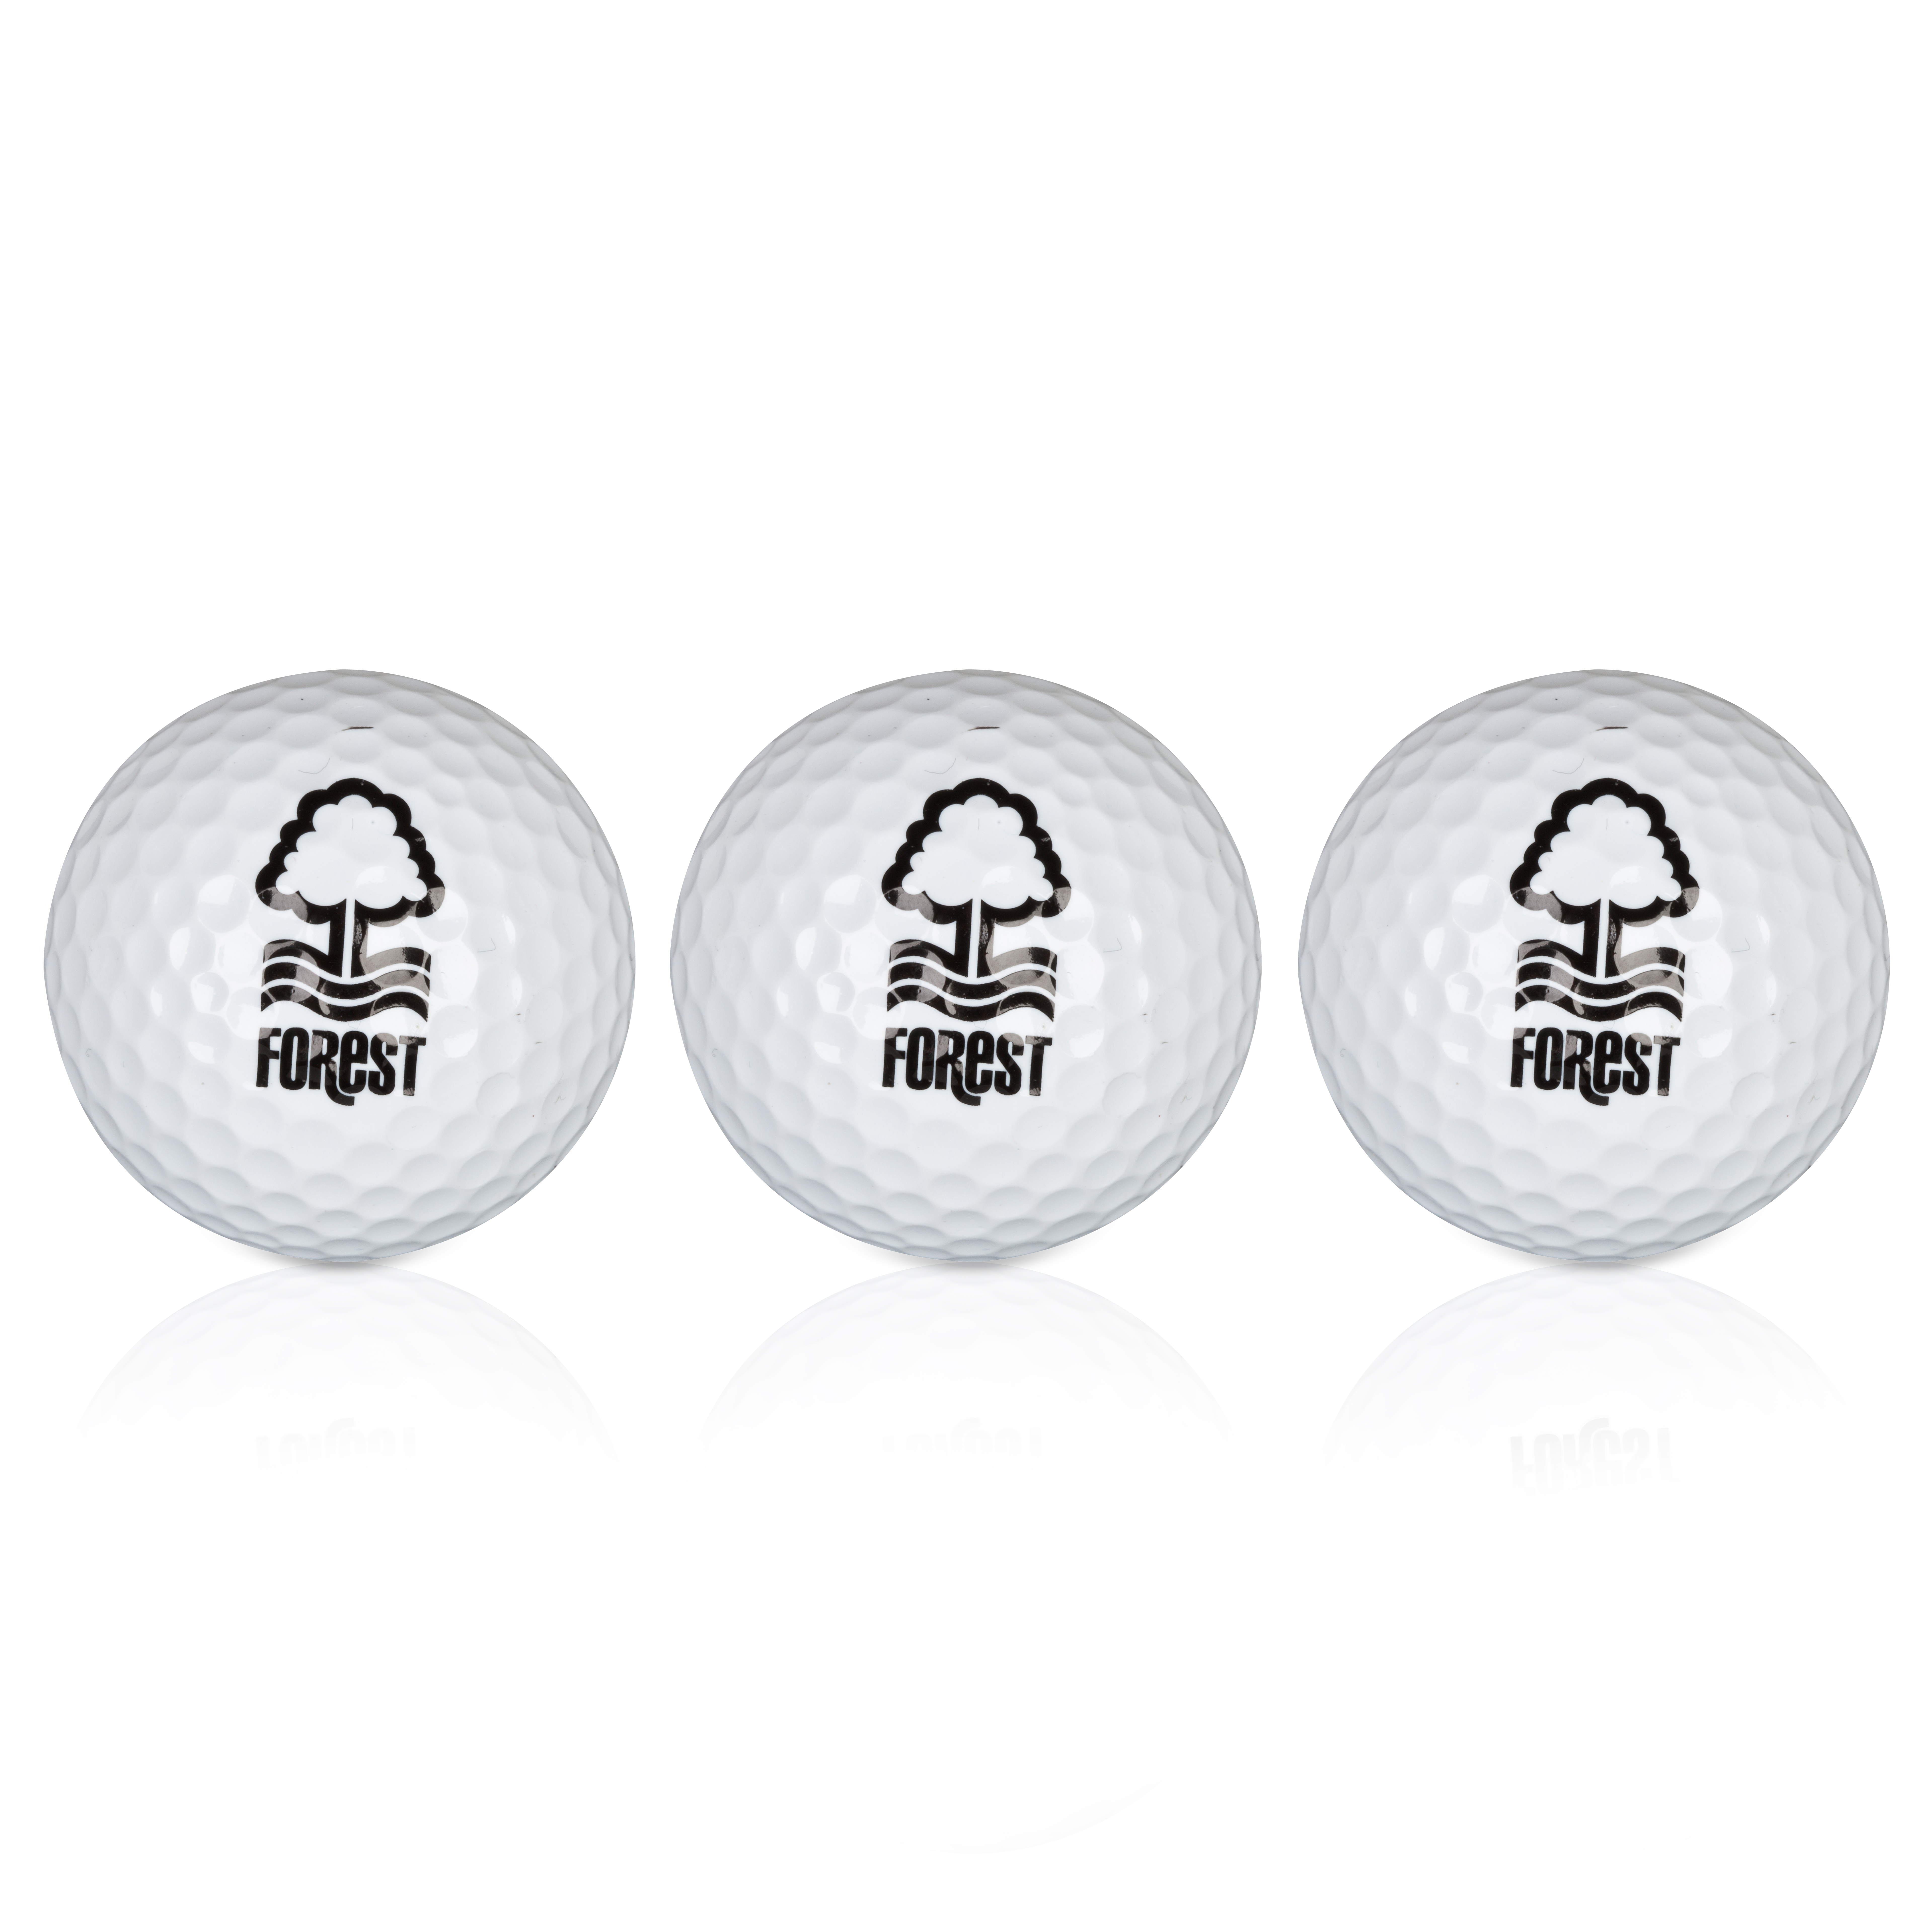 Nottingham Forest Executive Golf Balls 3 Pack